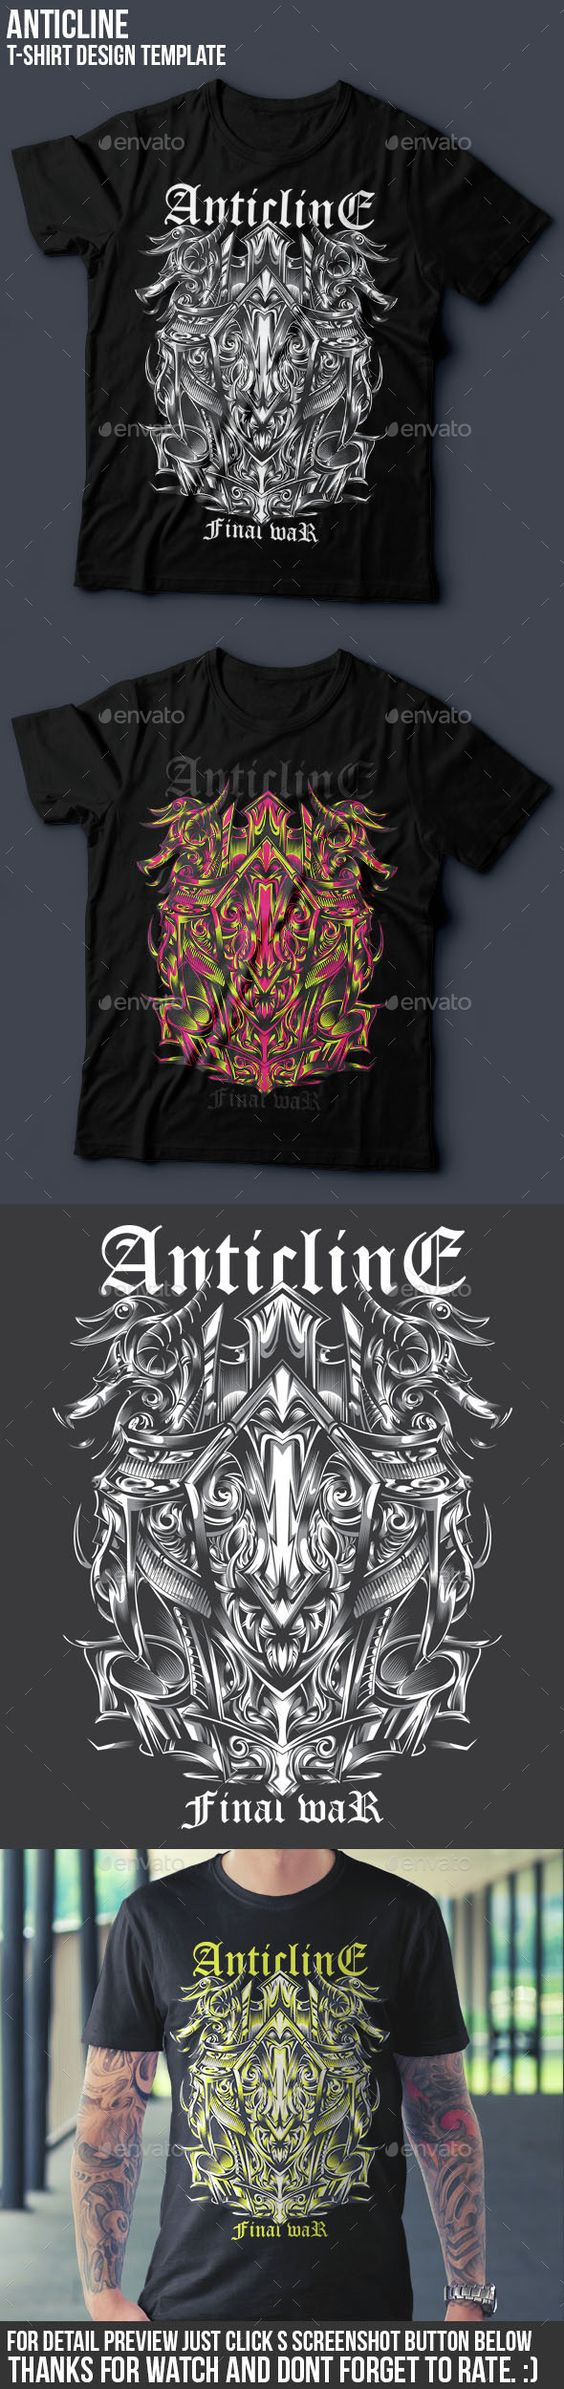 Shirt design resolution - Buy Anticline T Shirt Design Template By Badsyxn On Graphicriver Vector Resizable Easy To Edit And Change Color File Included Ai Eps Jpg Png And Read